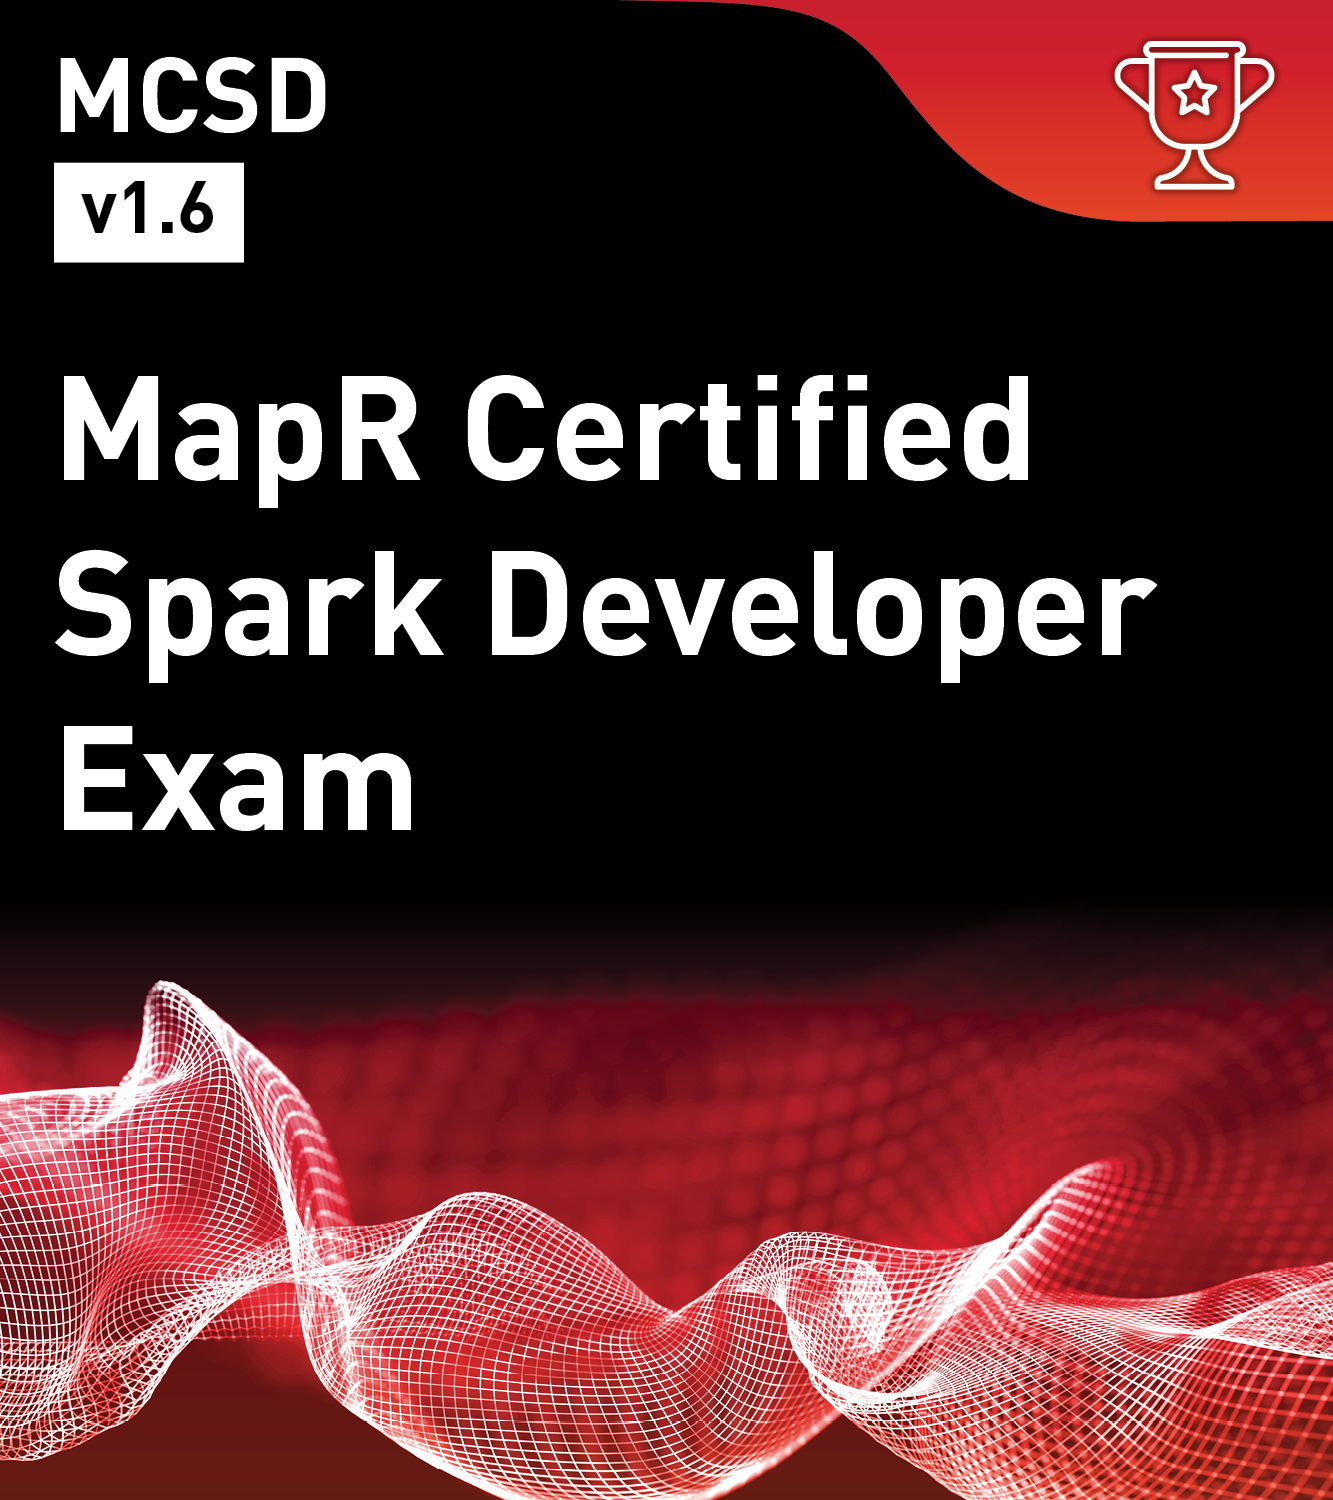 MCSD - MapR Certified Spark Developer 1.6